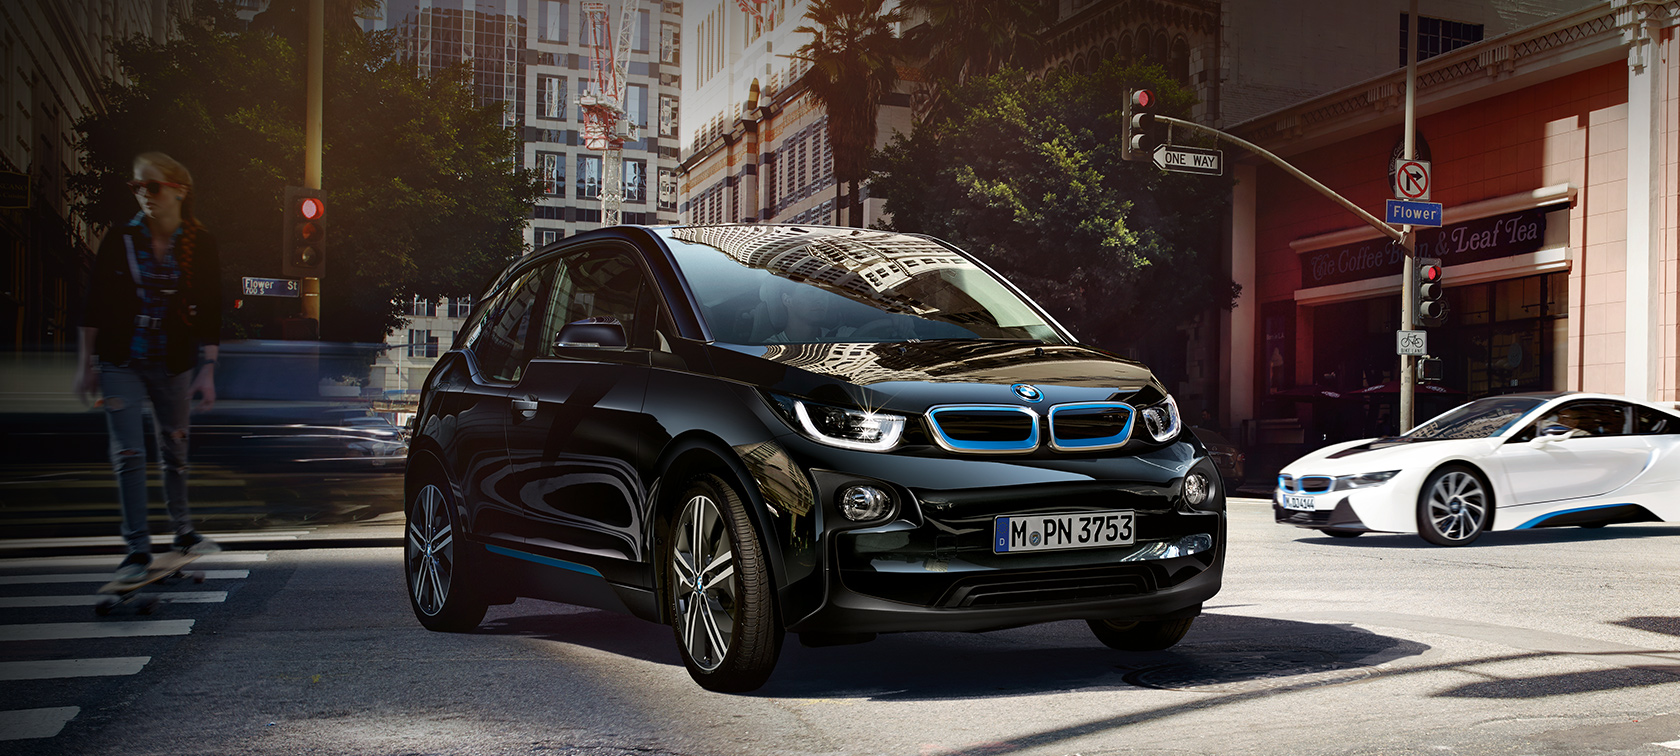 The design of the BMW i3